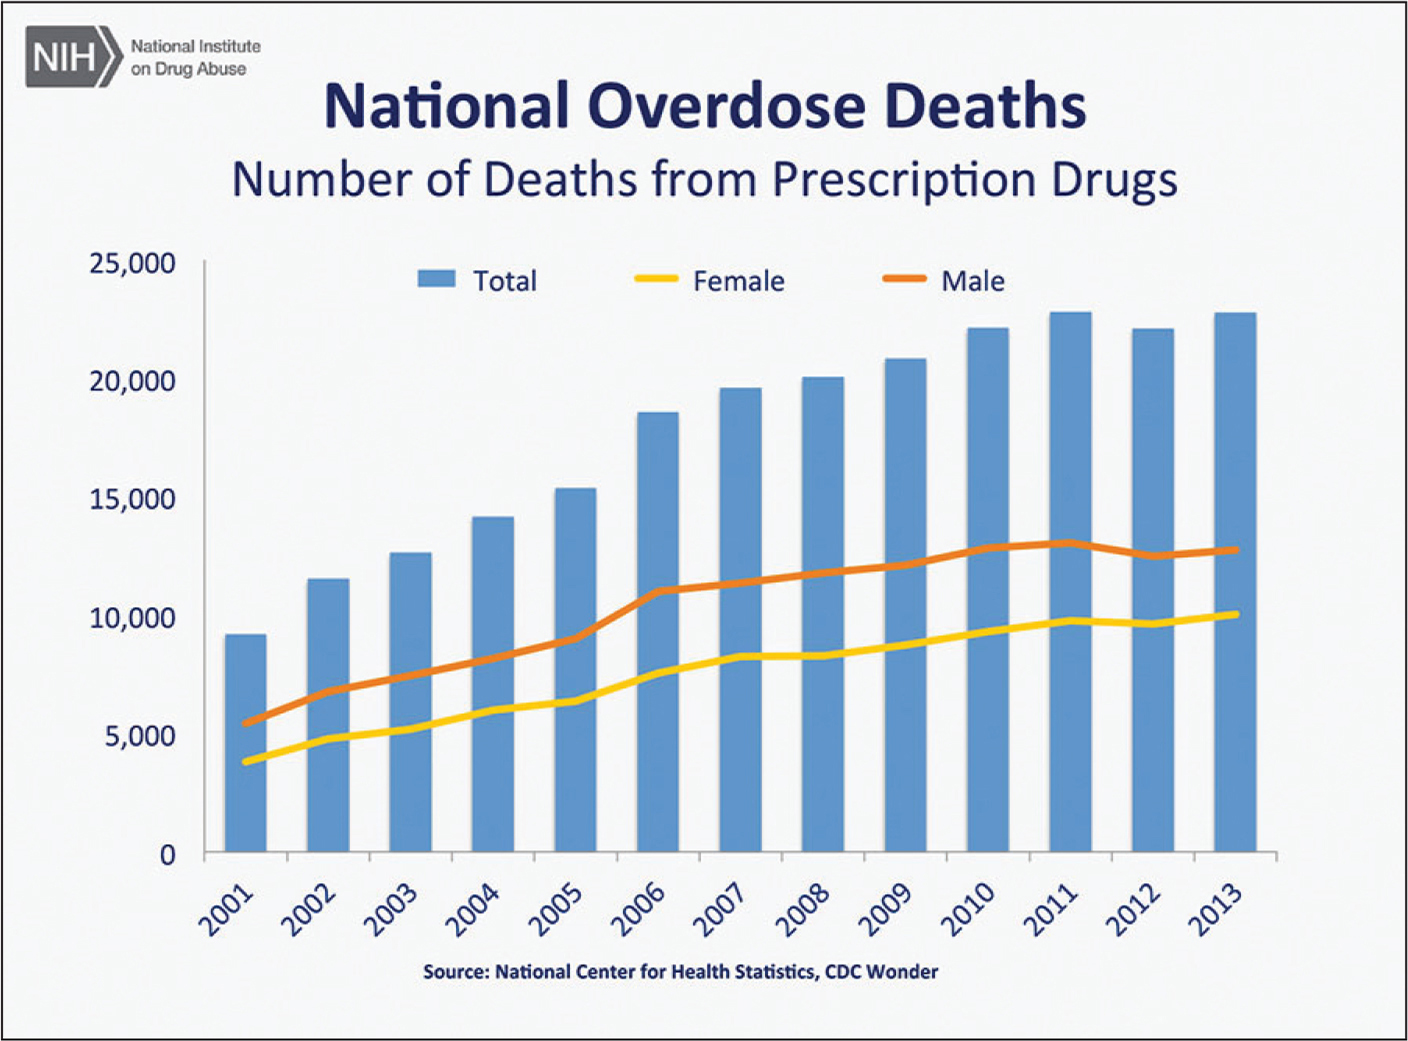 Bar chart showing the total number of US overdose deaths involving opioid prescription drugs from 2001 to 2013. The chart is overlain by a line graph showing the number of deaths by gender. From 2001 to 2013, there was a 2.5-fold increase in the total number of deaths. From the National Institutes of Health26 (in the public domain).